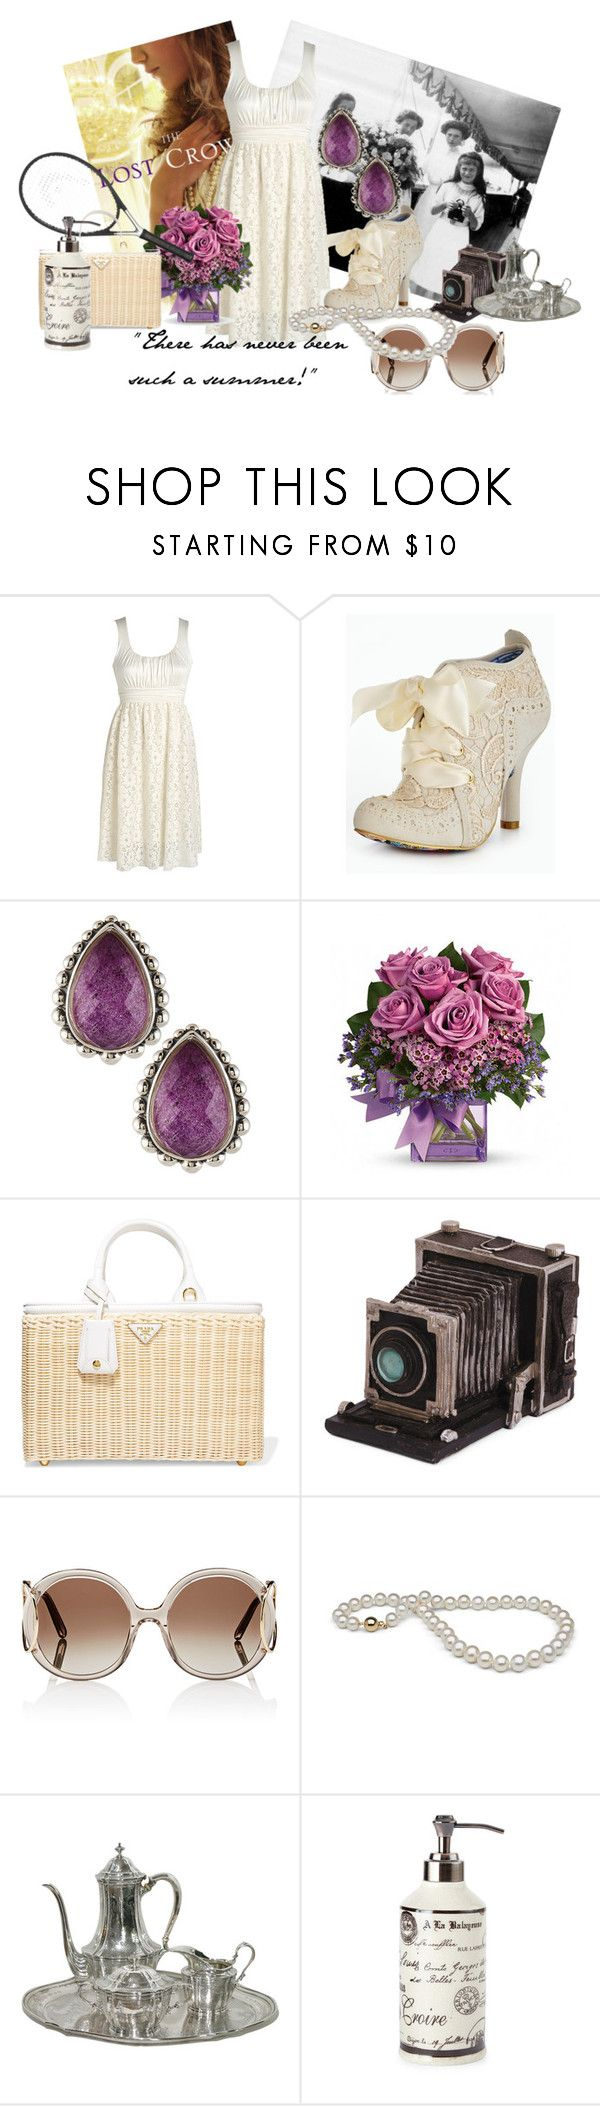 """""""The Lost Crown by Sarah Miller"""" by maryboleyns ❤ liked on Polyvore featuring ...Lost, Irregular Choice, Lagos, Prada, Chloé and vintage"""